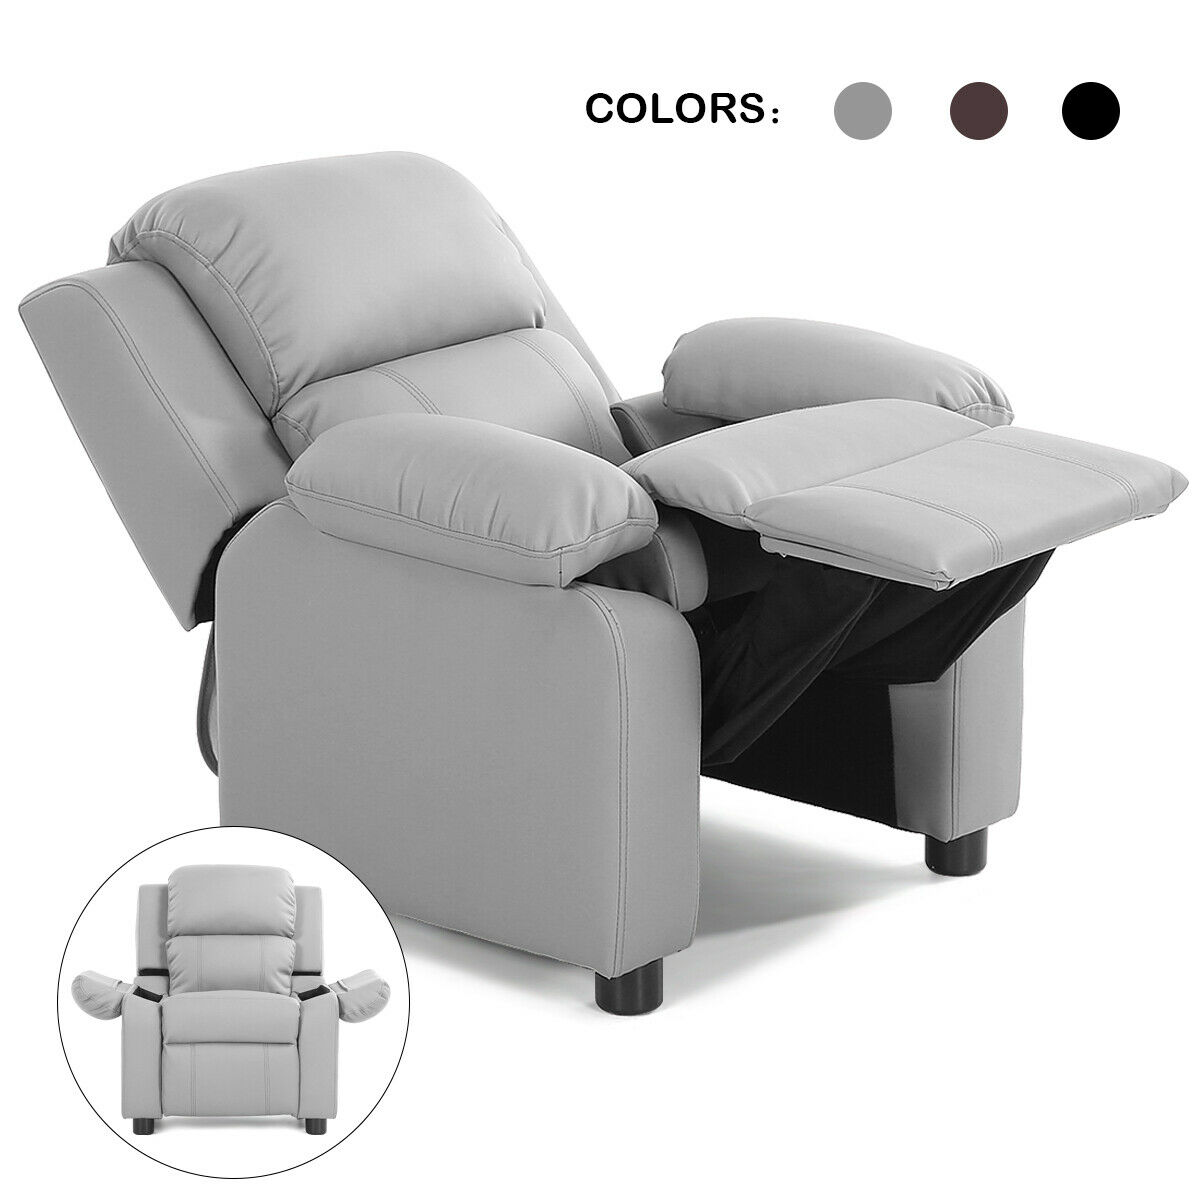 Costway Kids Sofa Deluxe Padded Armchair Recliner Headrest W/ Storage Arms